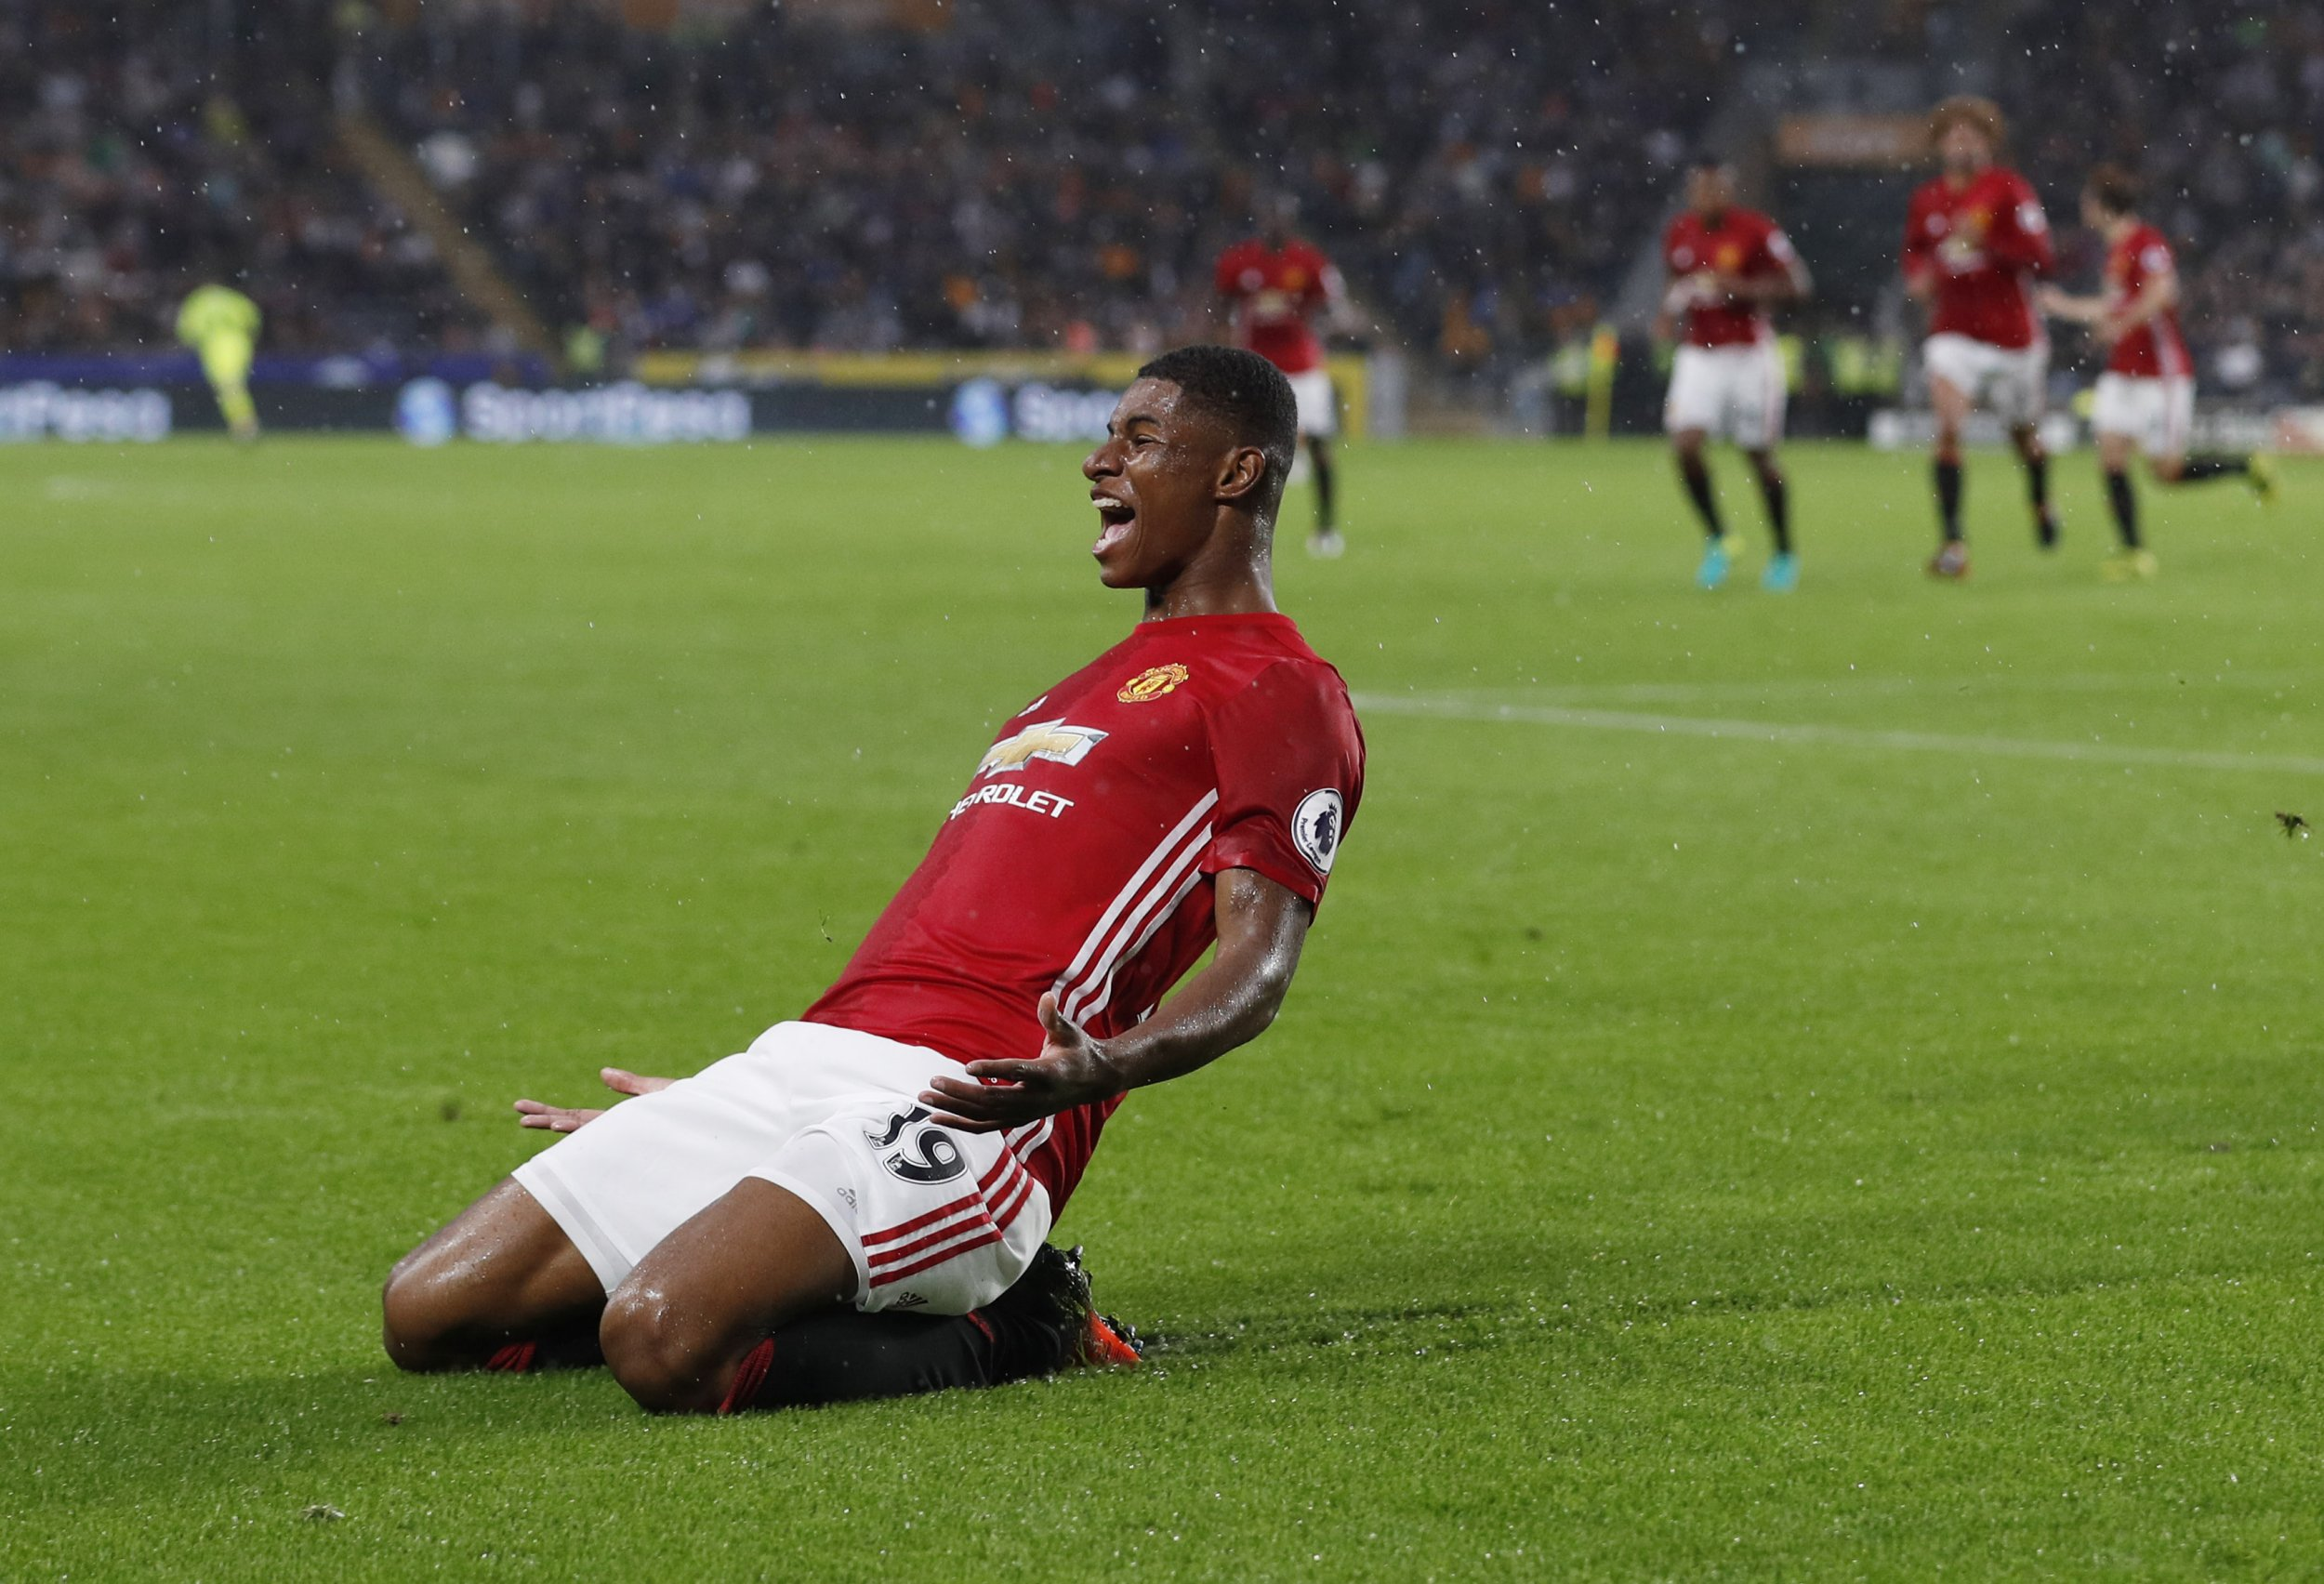 Hull 0-1 Manchester United: Juan Mata flops as Marcus Rashford scores late winner